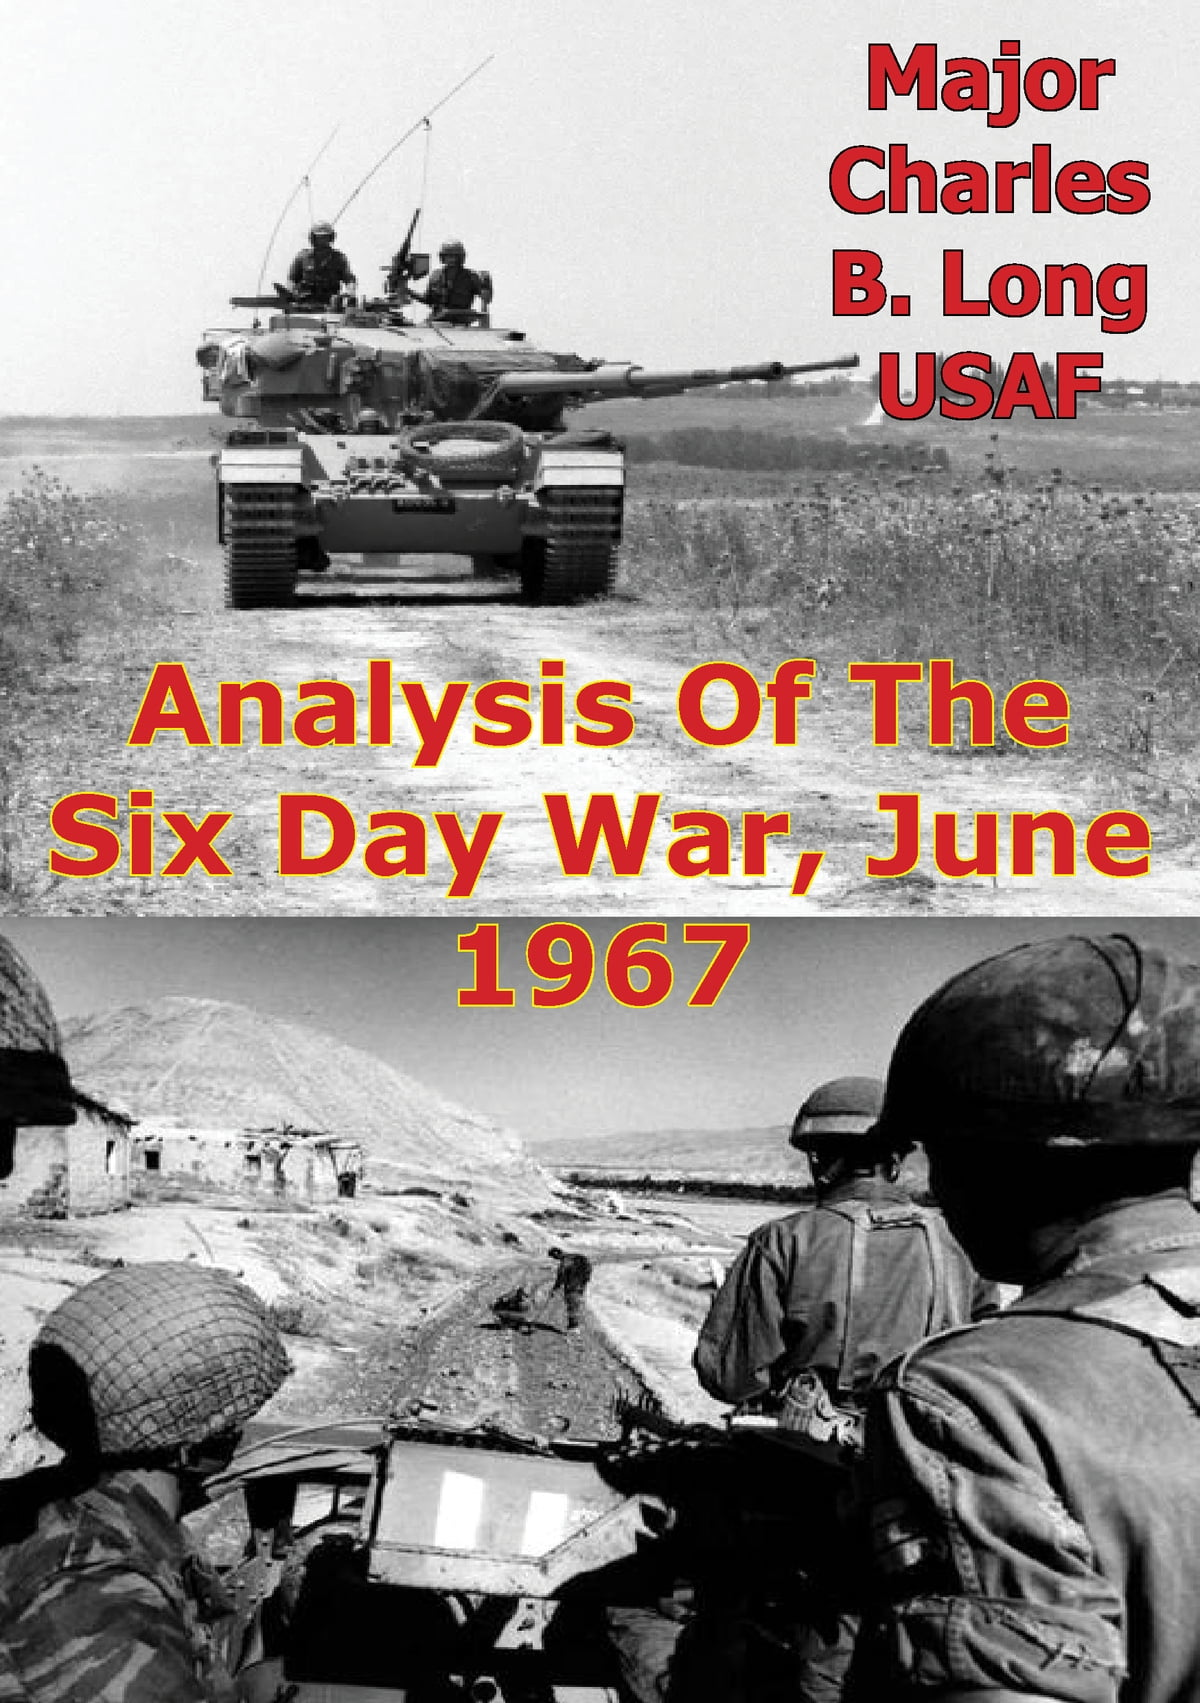 the cause of the six day war The six day war as it became known was the third conflict between israel and arab nations it was essentially a continuation of the first two conflicts as they were never really resolved as it is the causes of the six day war were the same as earlier, arab disdain for israel's existence the six [.